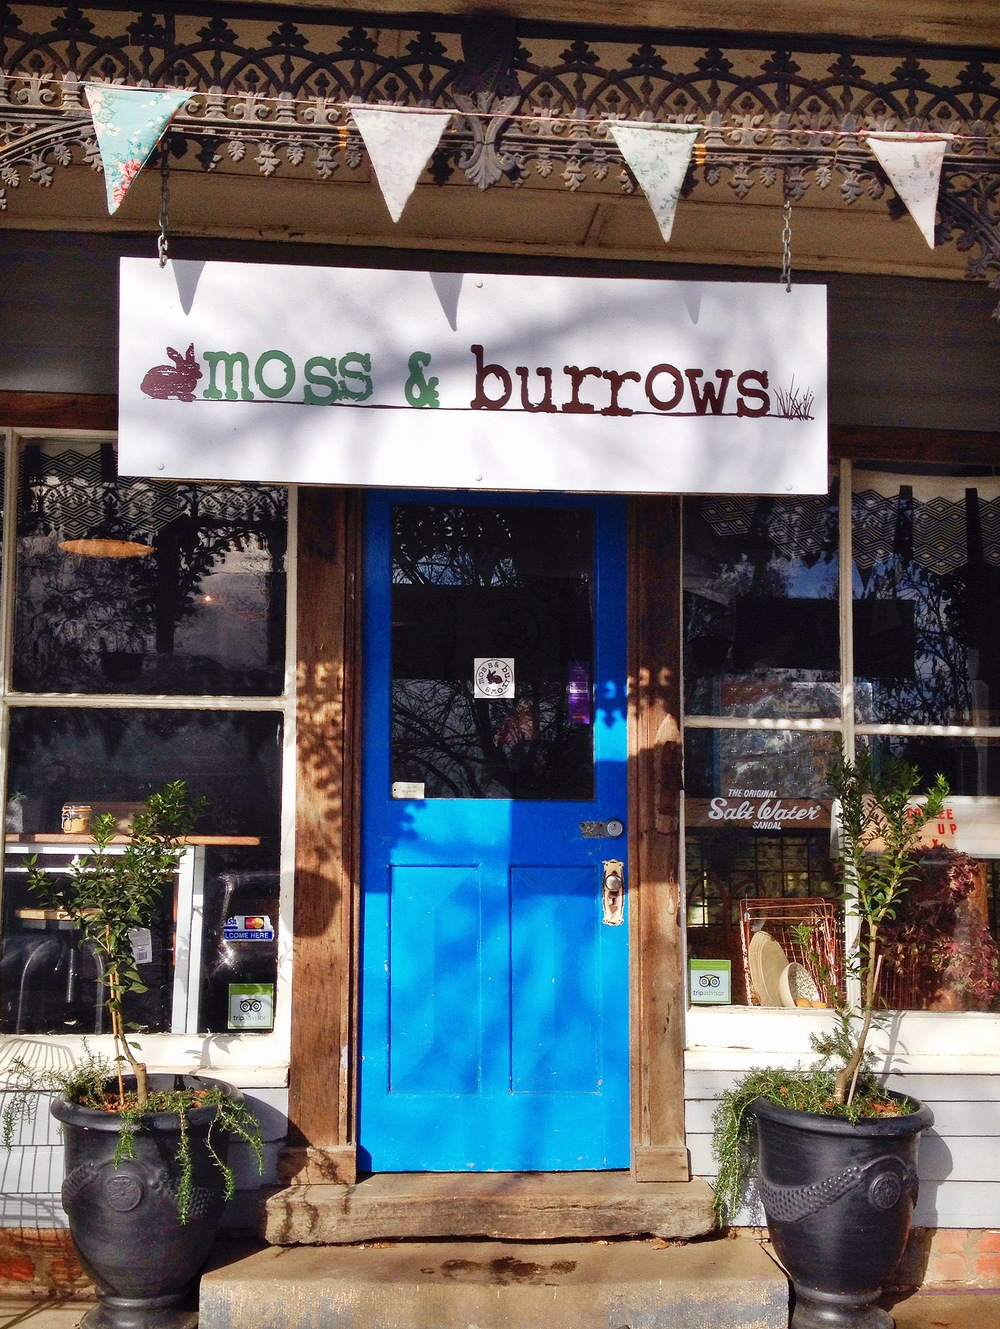 Hello Moss & Burrows!